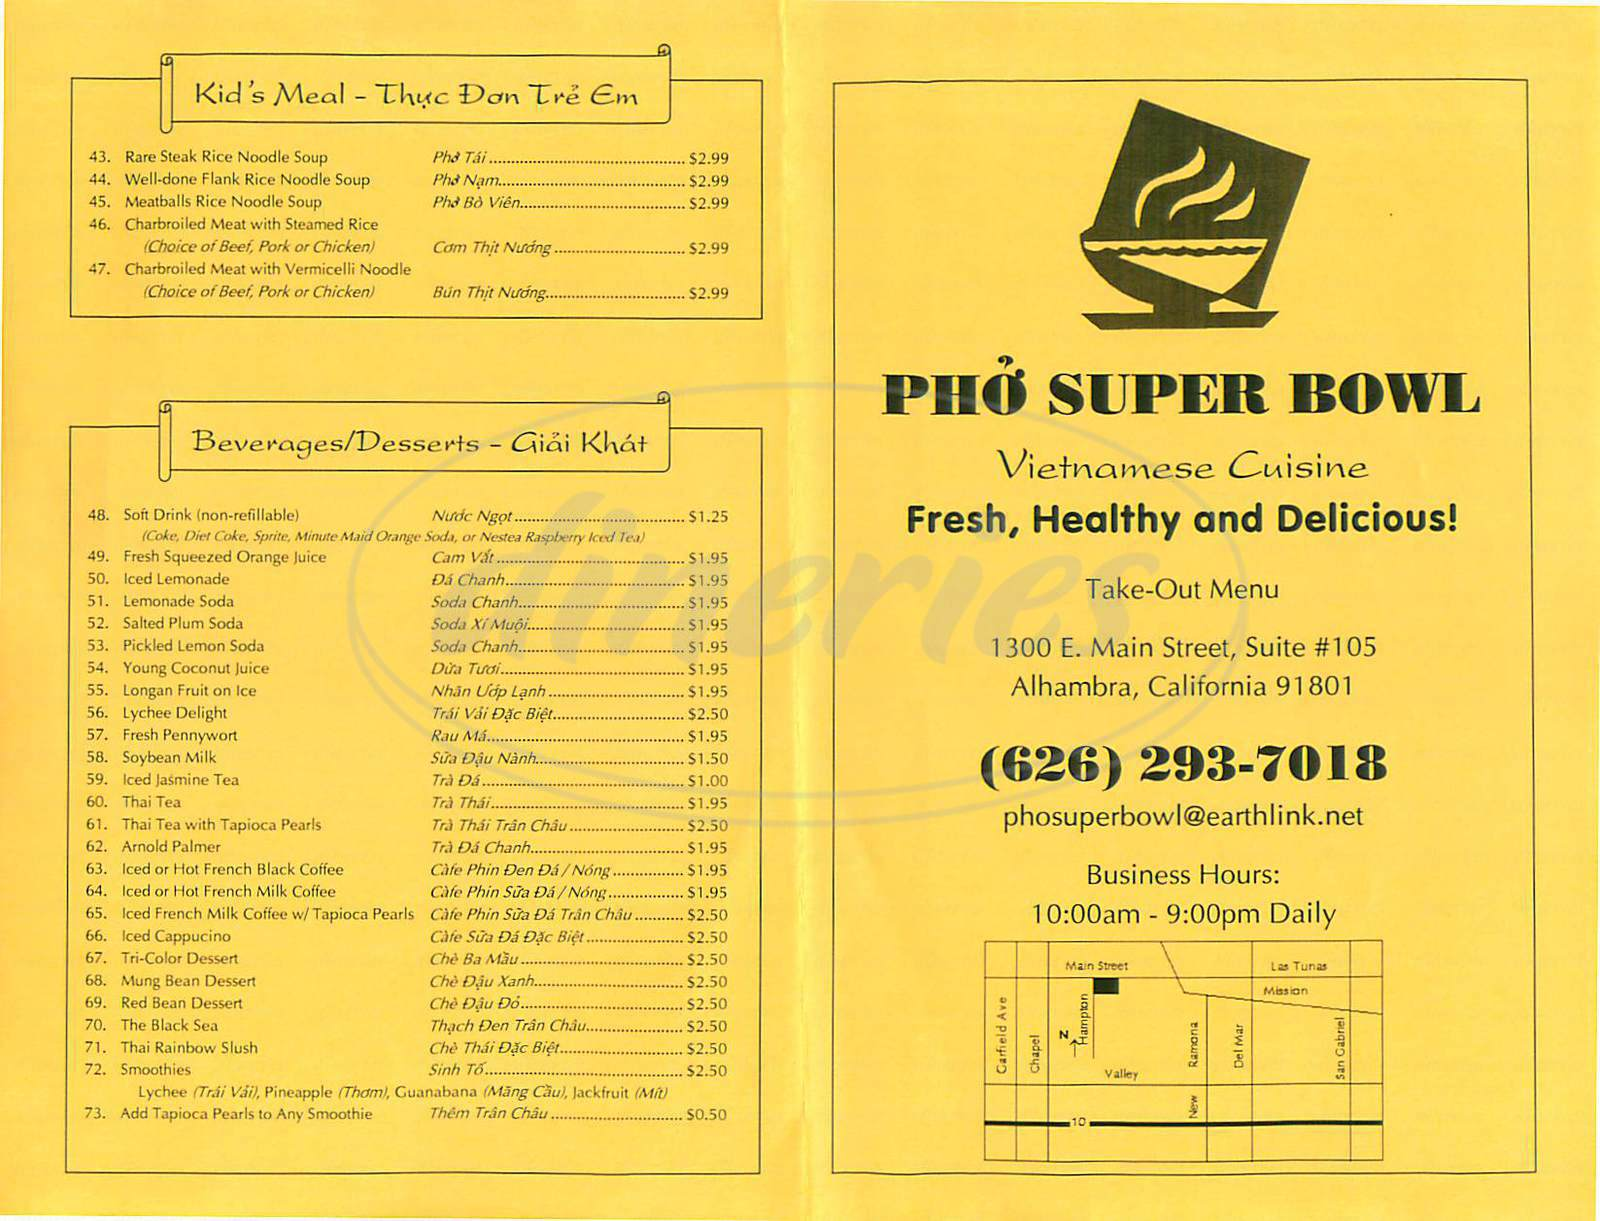 menu for Pho Super Bowl